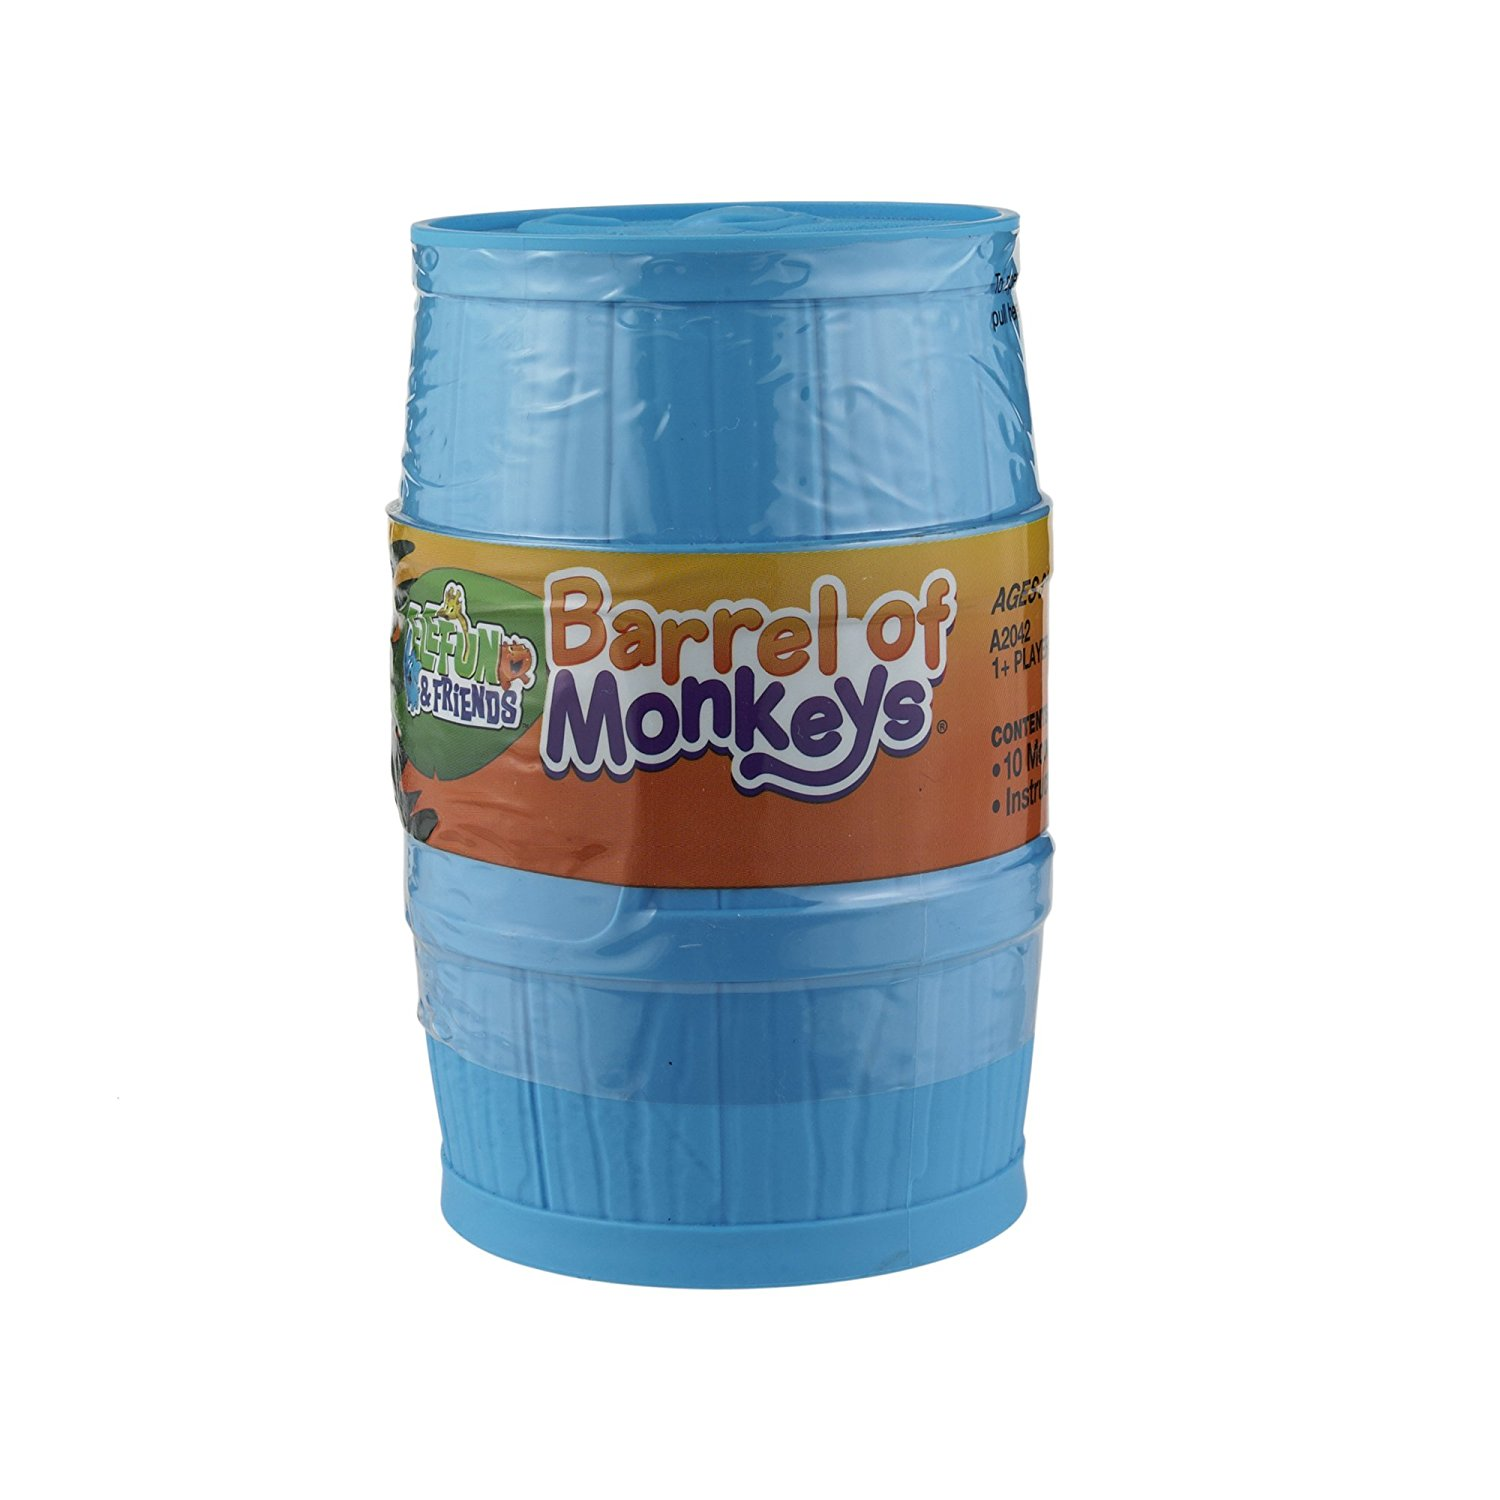 Elefun and Friends Barrel of Monkeys Game Colors May Vary, USA, Brand Hasbro by Hasbro